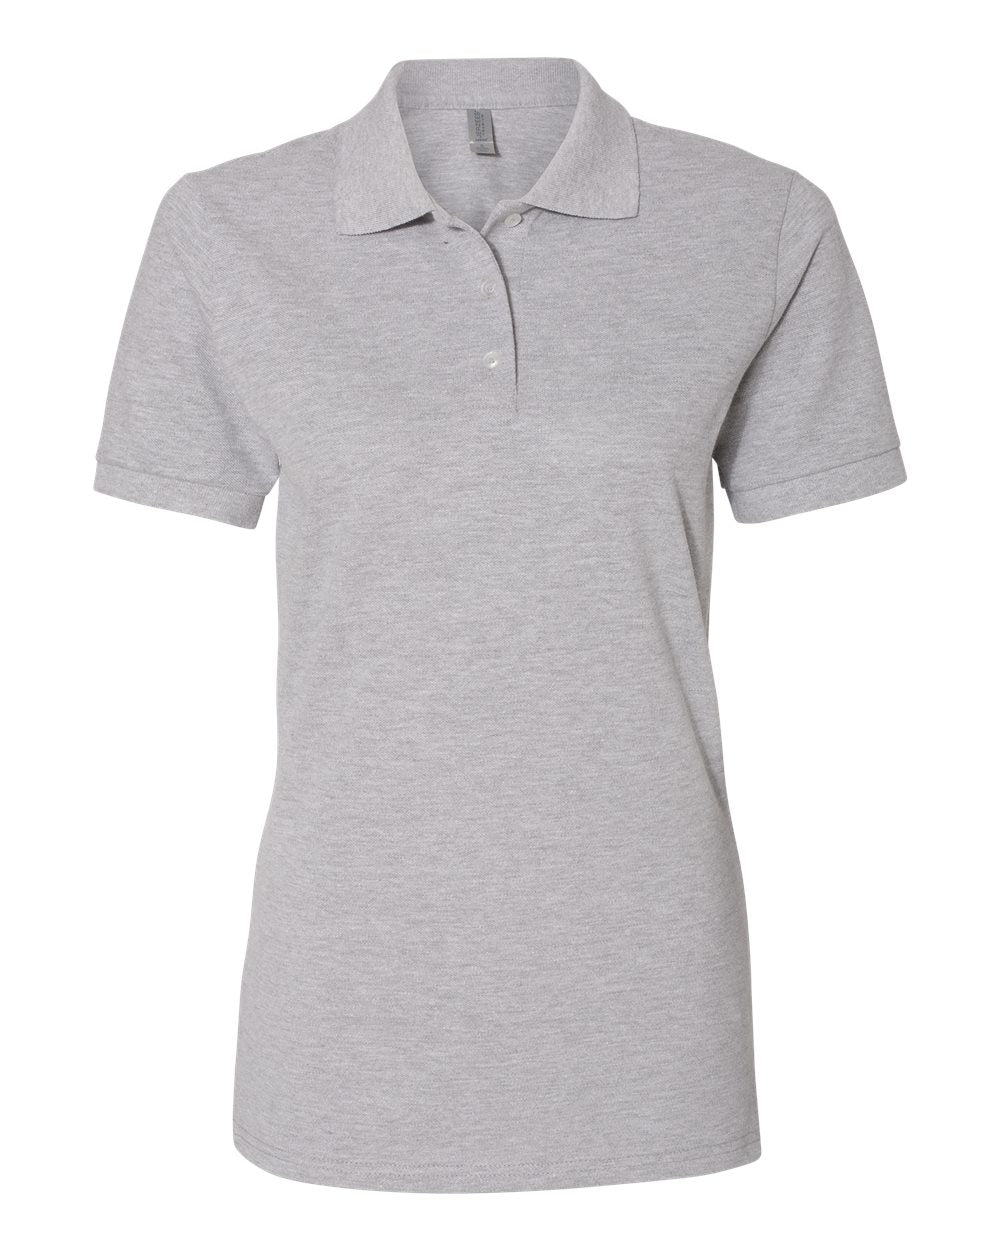 Jerzees Ladies 100% Ringspun Cotton Pique Polo